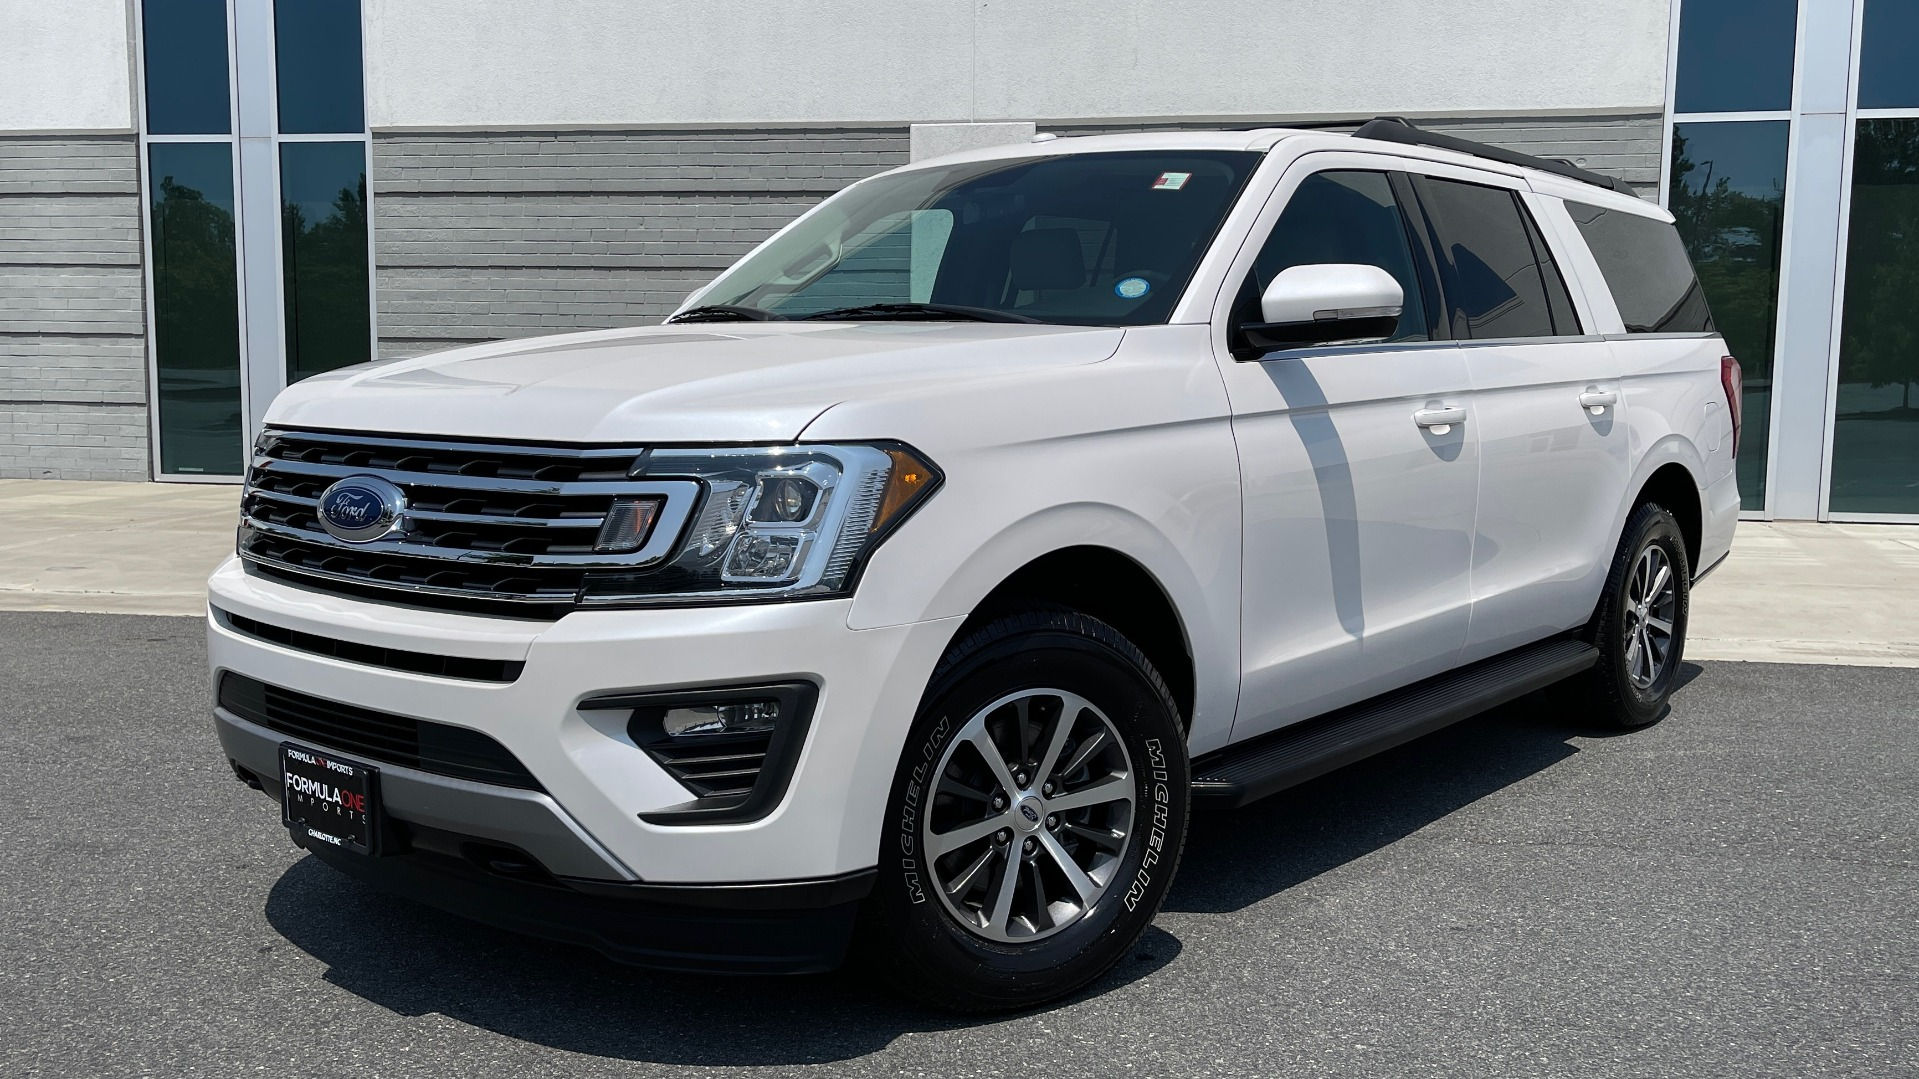 Used 2019 Ford EXPEDITION MAX XLT / 3.5L ECOBOOST / NAV / PANO-ROOF / 3-ROWS / REARVIEW for sale Sold at Formula Imports in Charlotte NC 28227 1